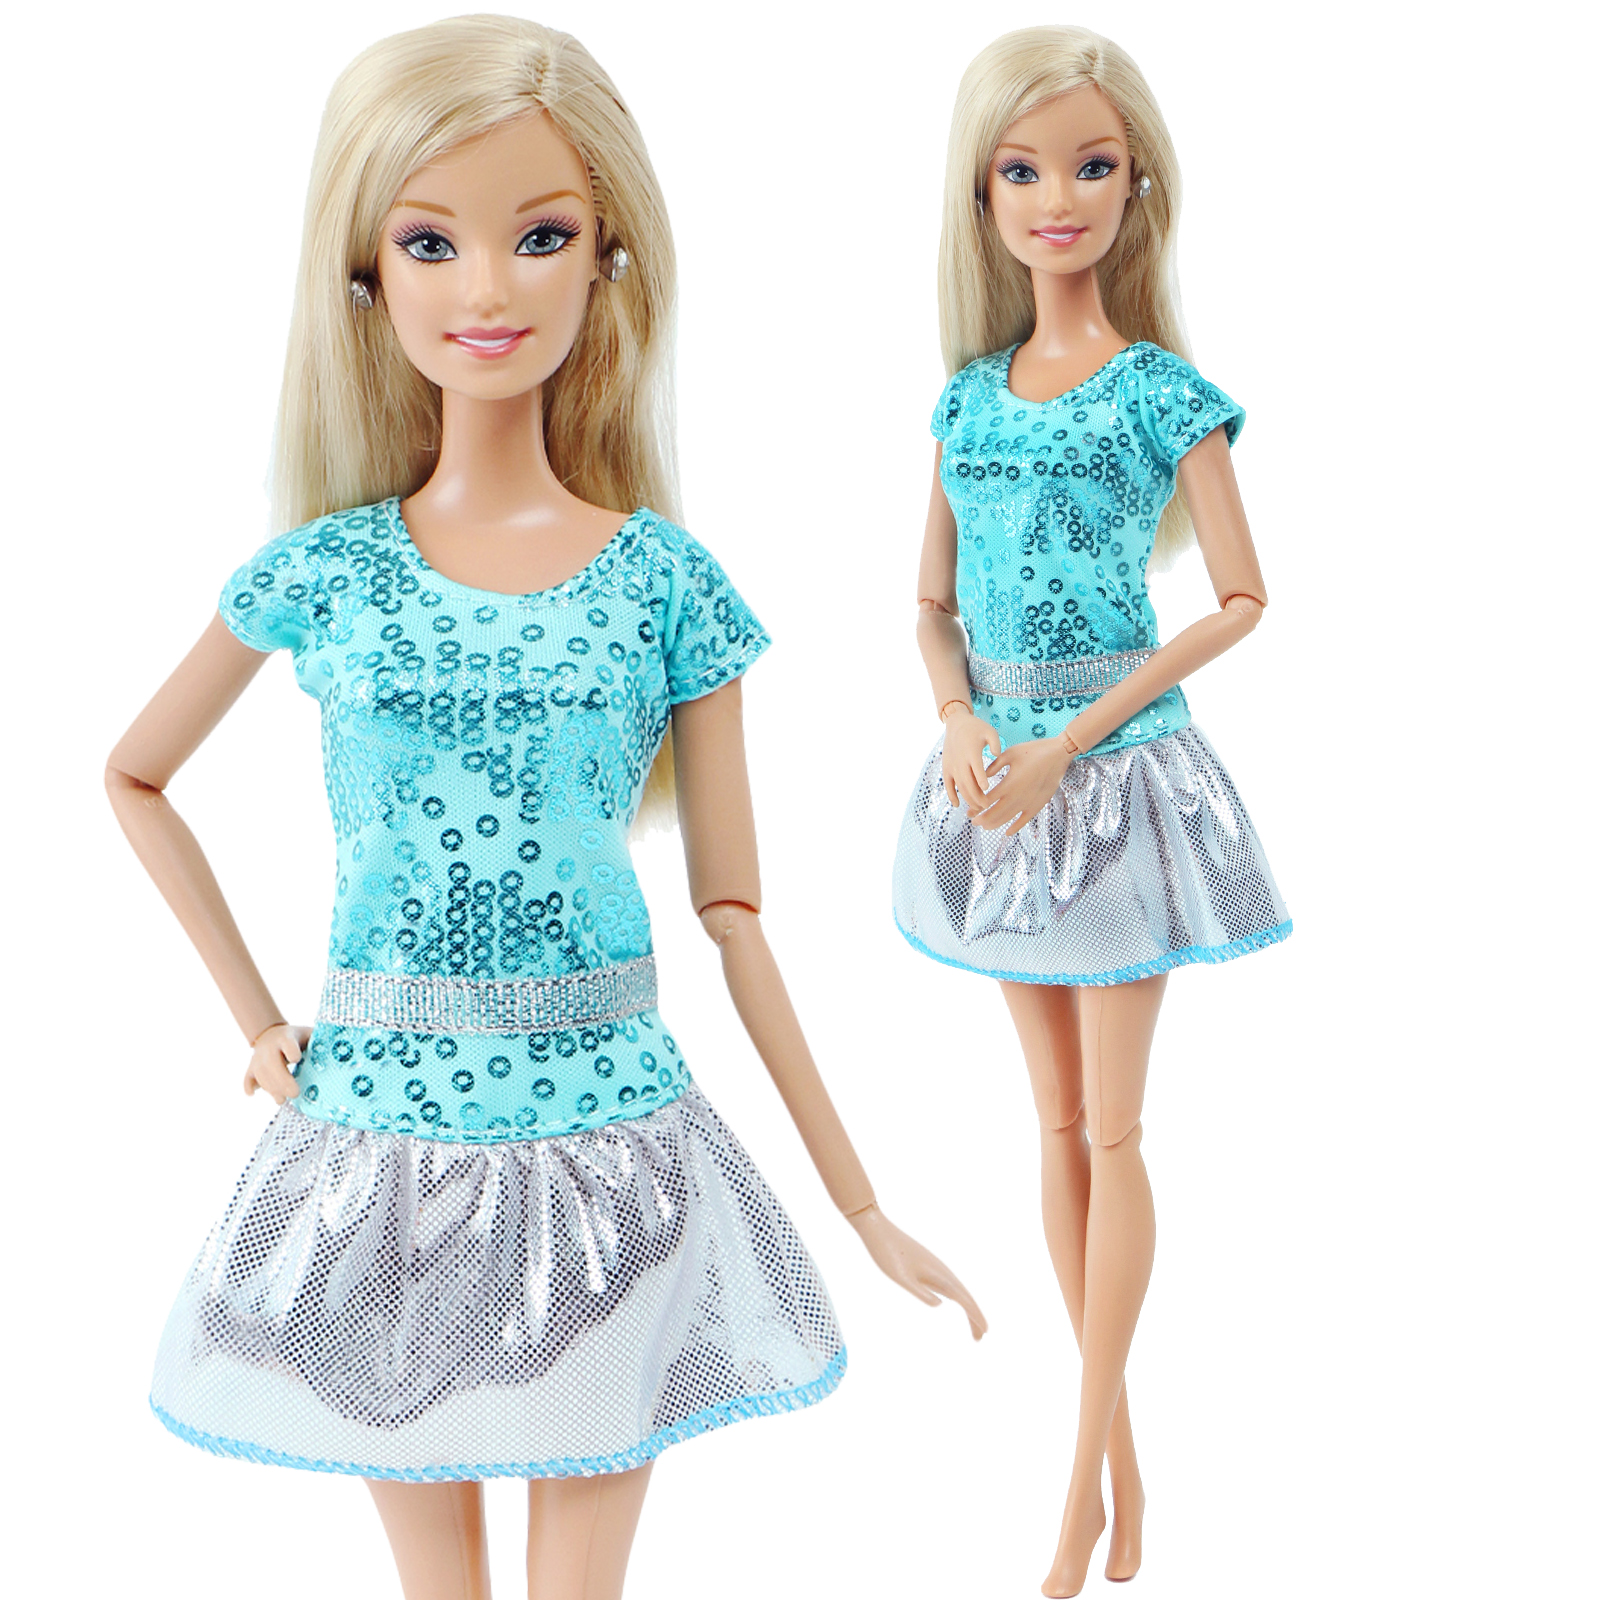 1 Pcs Fashion Doll Dress For Barbie Doll Shiny Blue Wedding Party Short Gown 12'' 30cm Girl Doll Clothes Accessories Kid's Toy